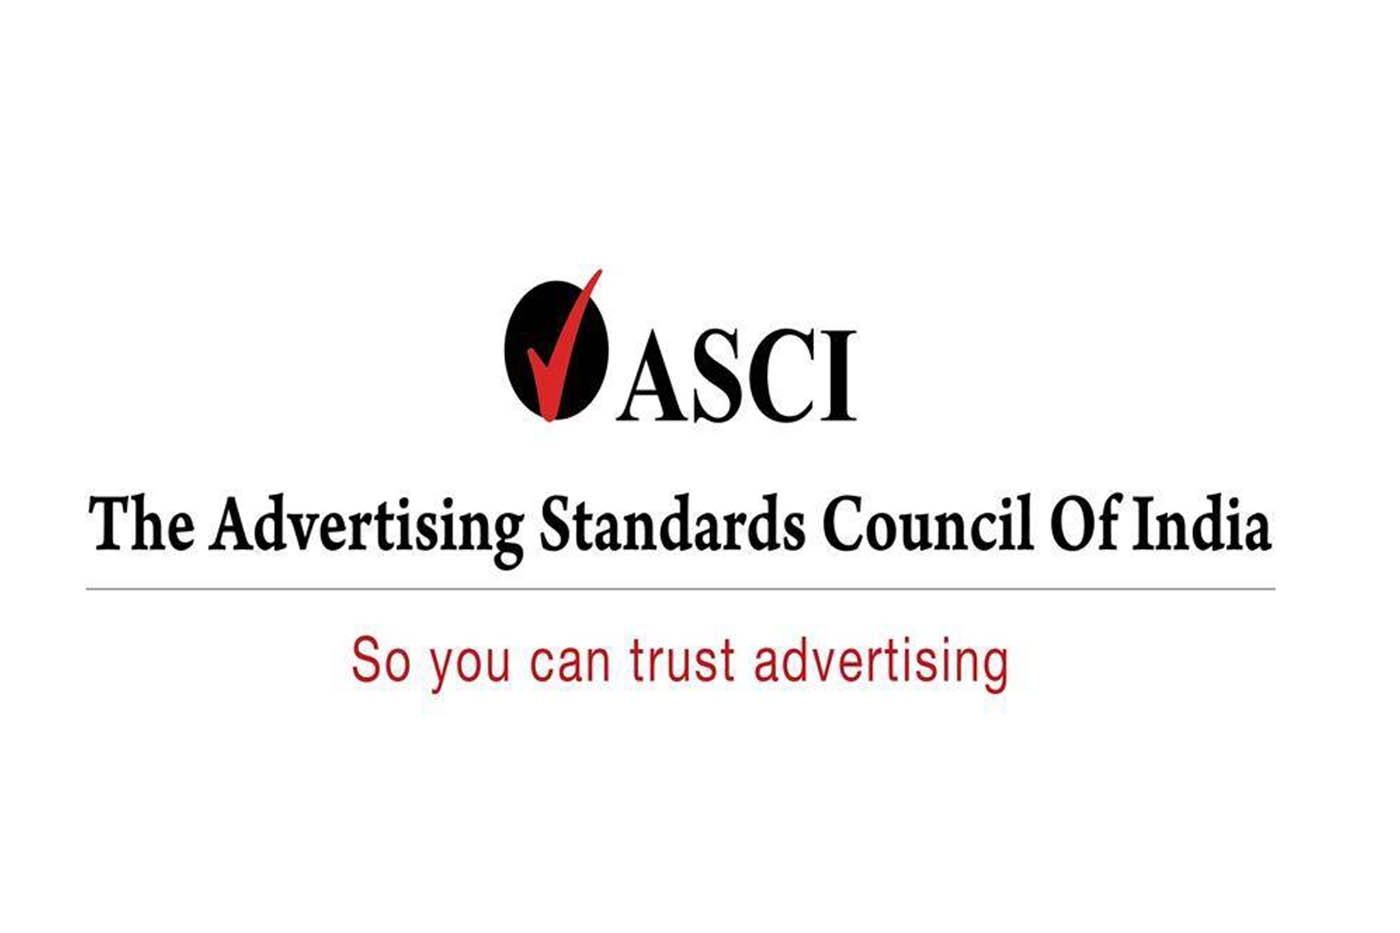 Only 3.61% of COVID-19 related ad claims were true says Advertising Standards Council of India (ASCI)